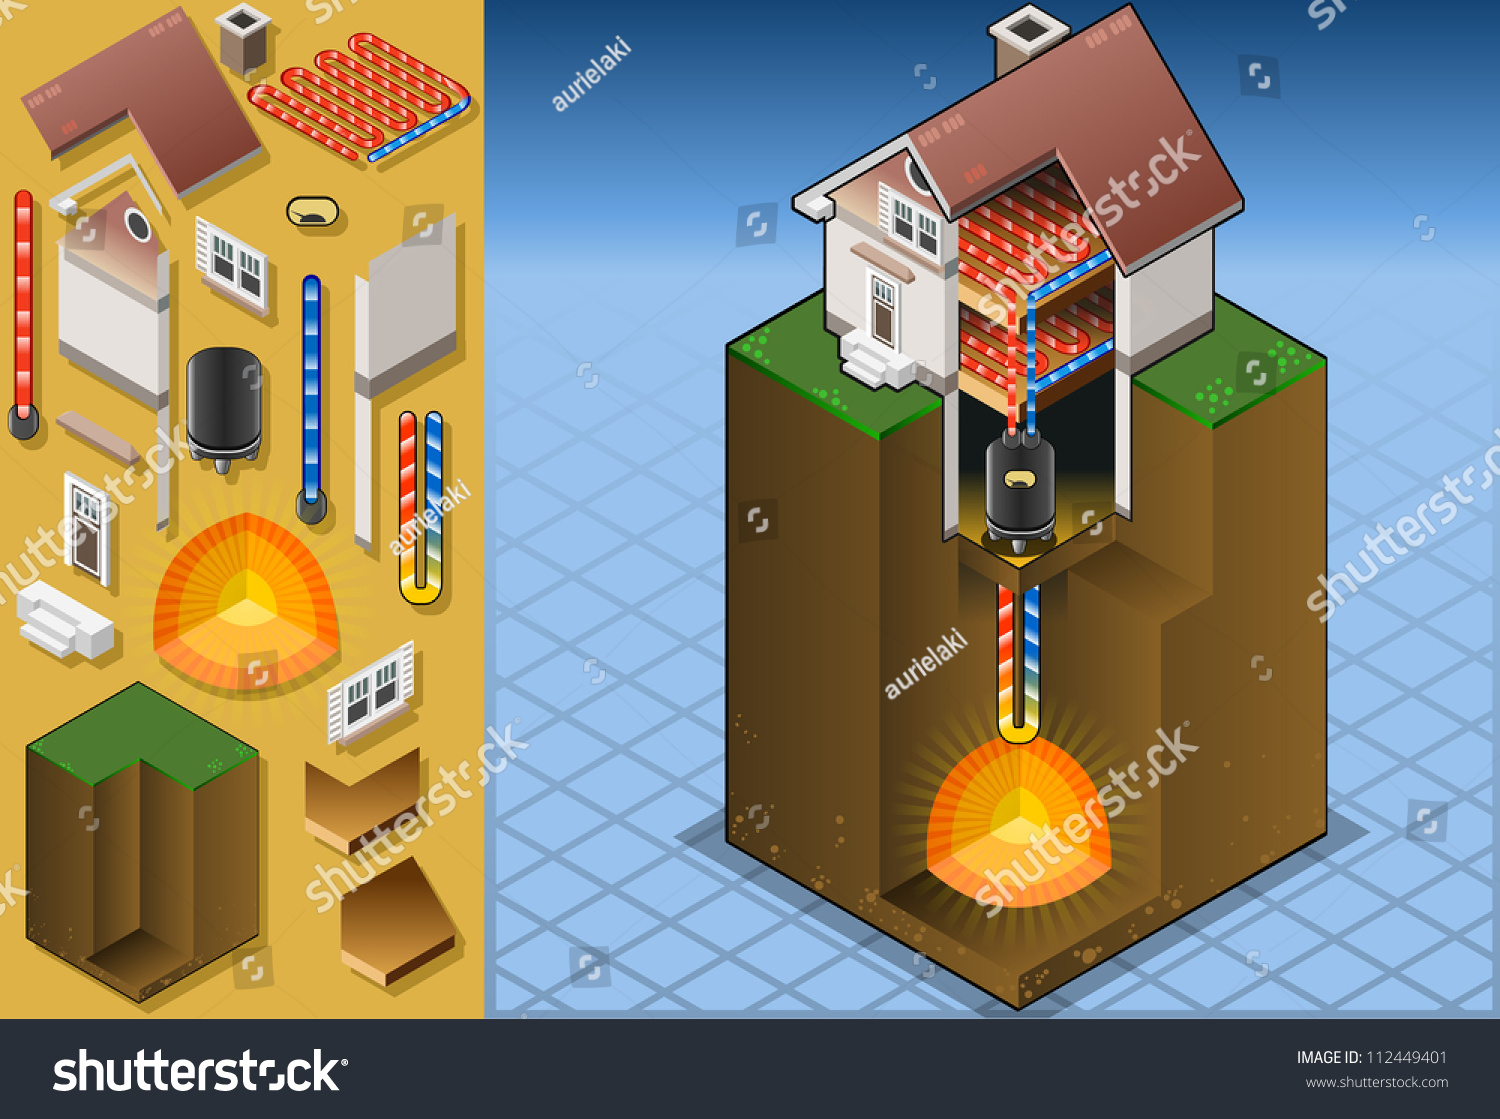 Geothermal Earth Energy Heat Pump Diagram. 3D Isometric Infographic of ...